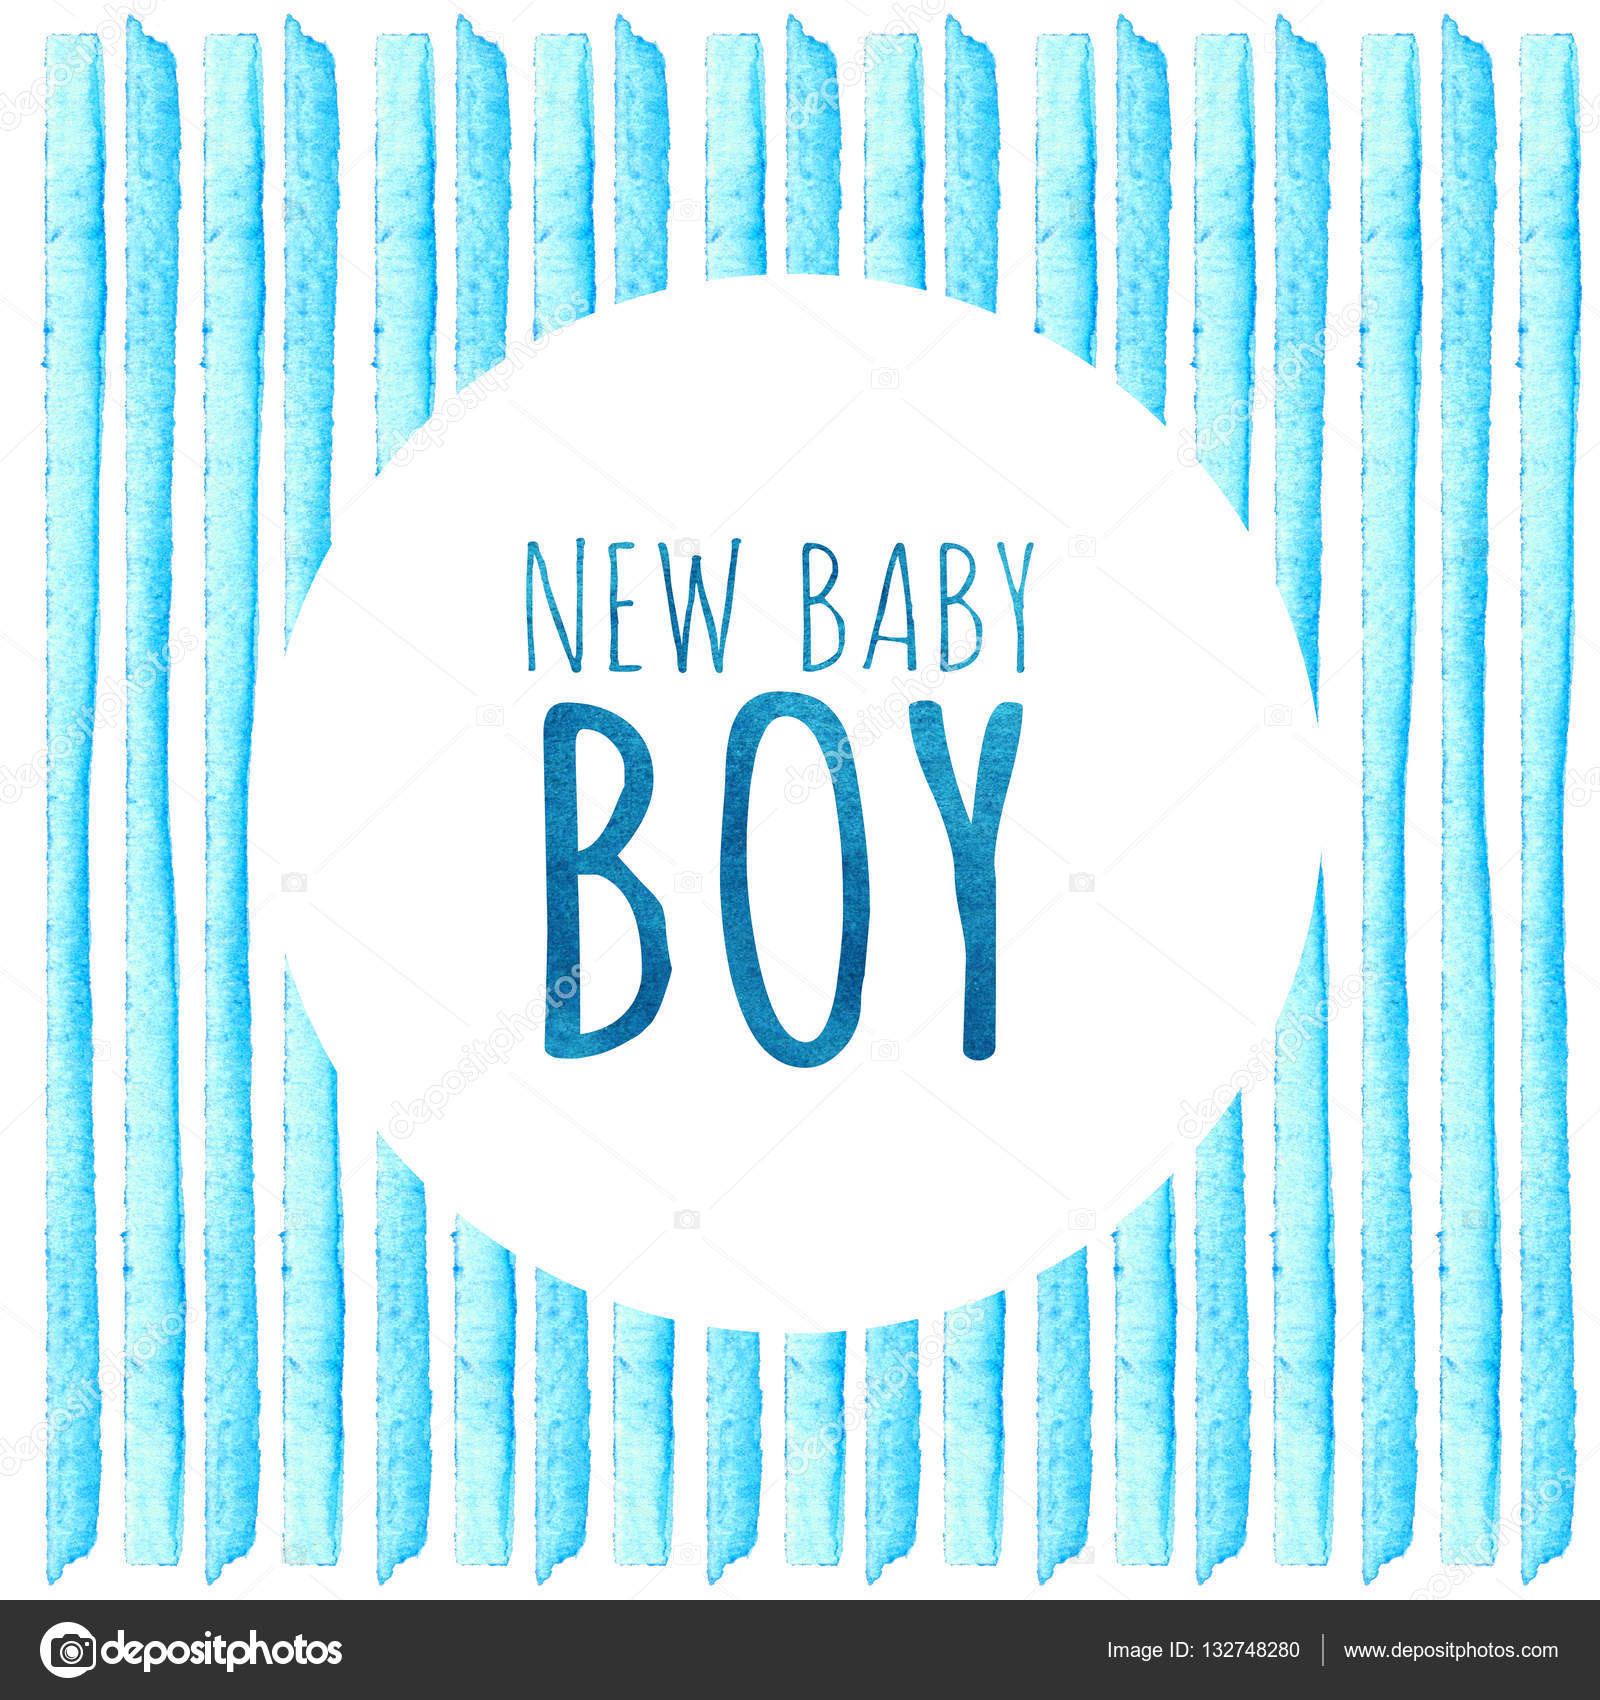 New baby boy watercolor creative greeting cards template retro baby shower invitation card its a boy new baby boy baby shower greeting card watercolor creative greeting cards template element design for posters kristyandbryce Images